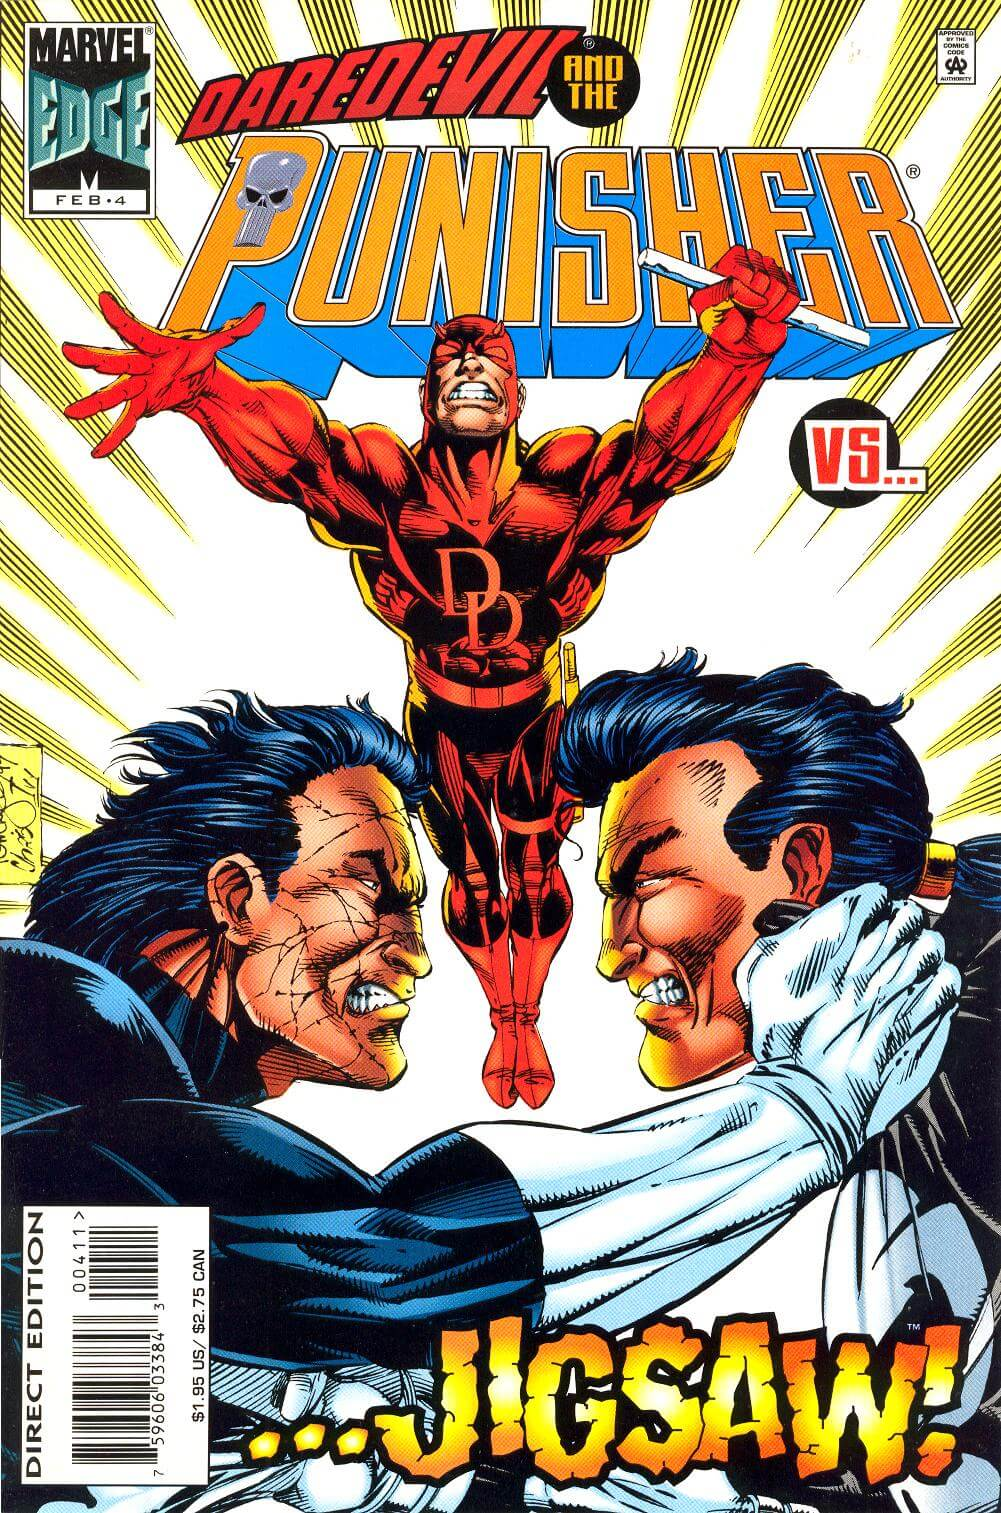 The Punisher Vol 3 #4